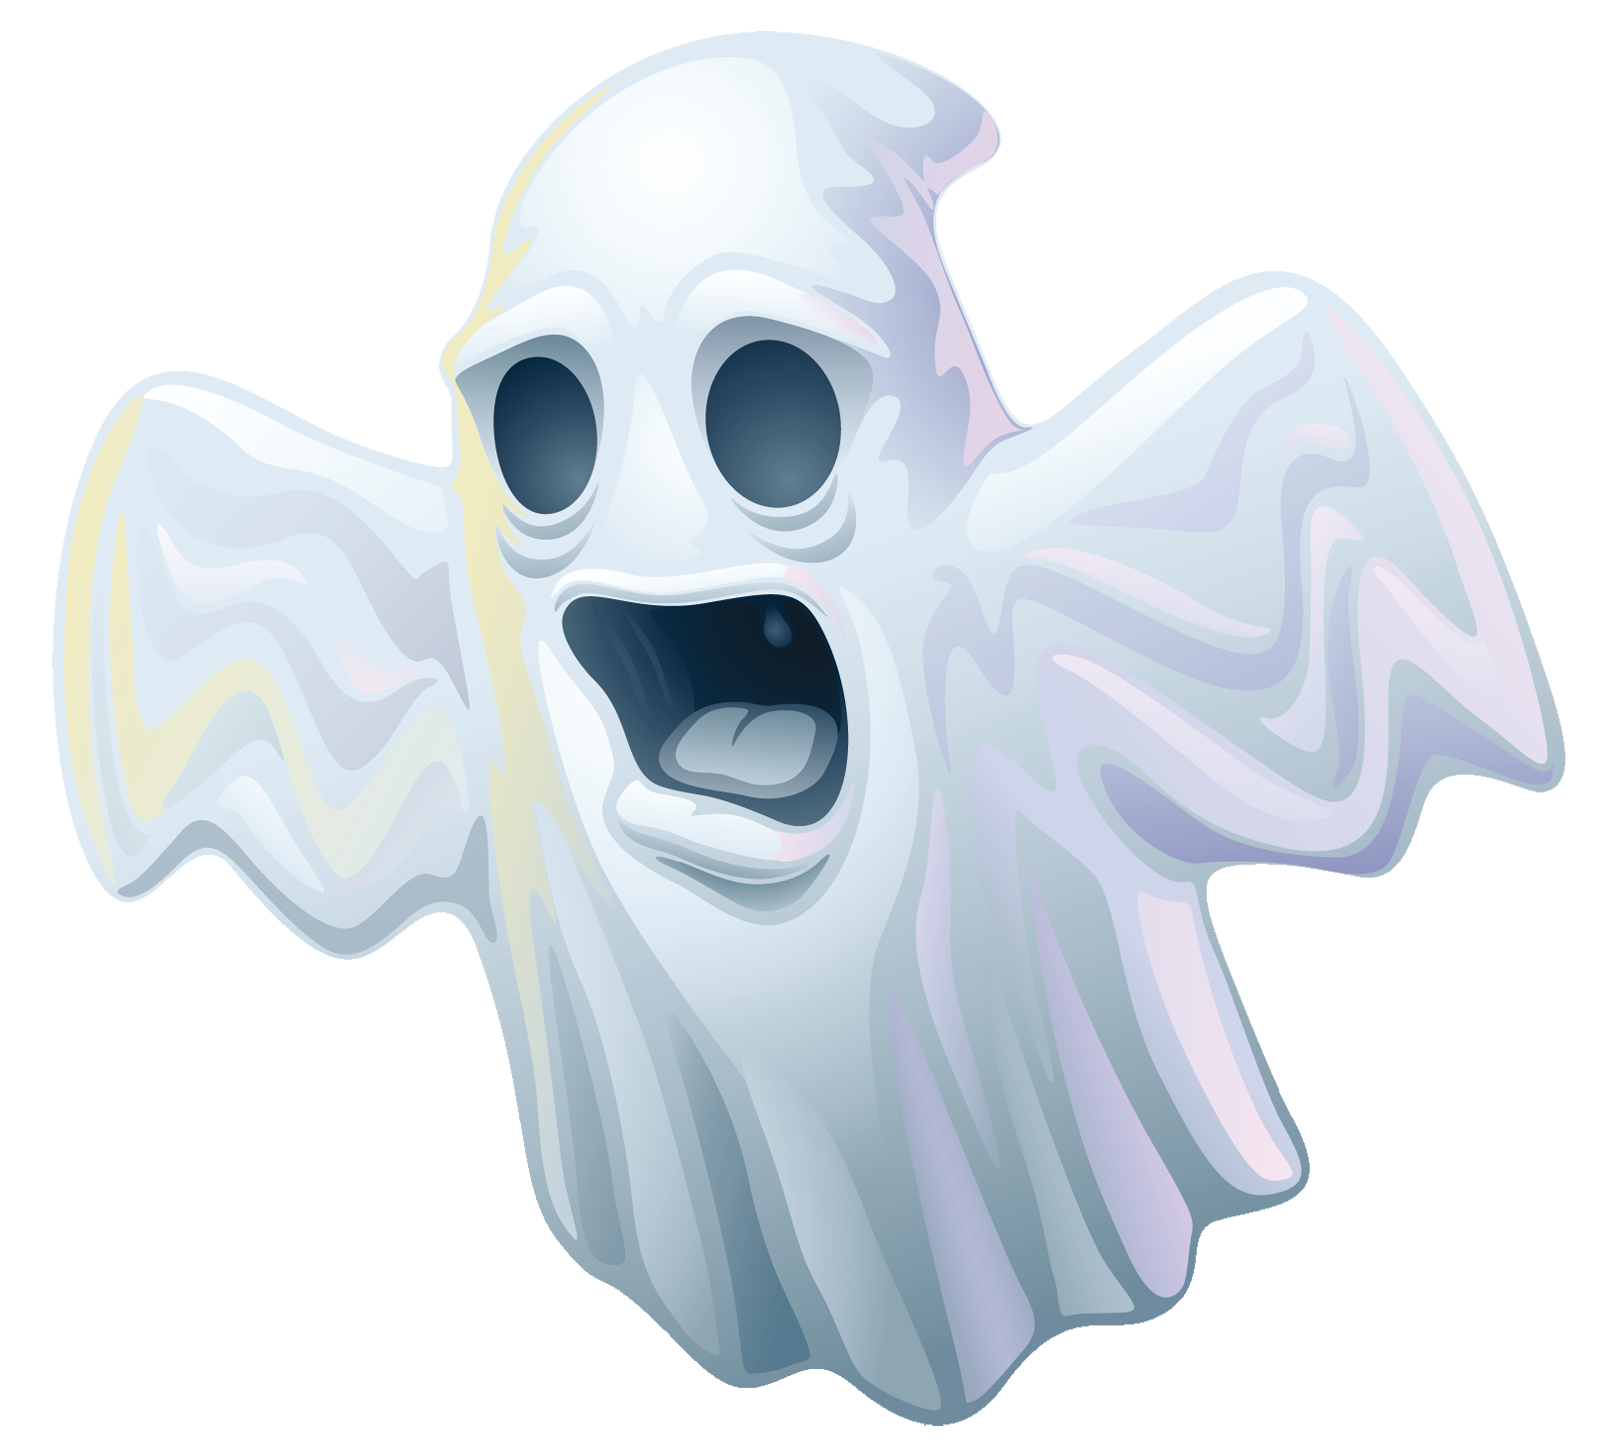 Halloween Ghost Png image #36307 - Ghost PNG